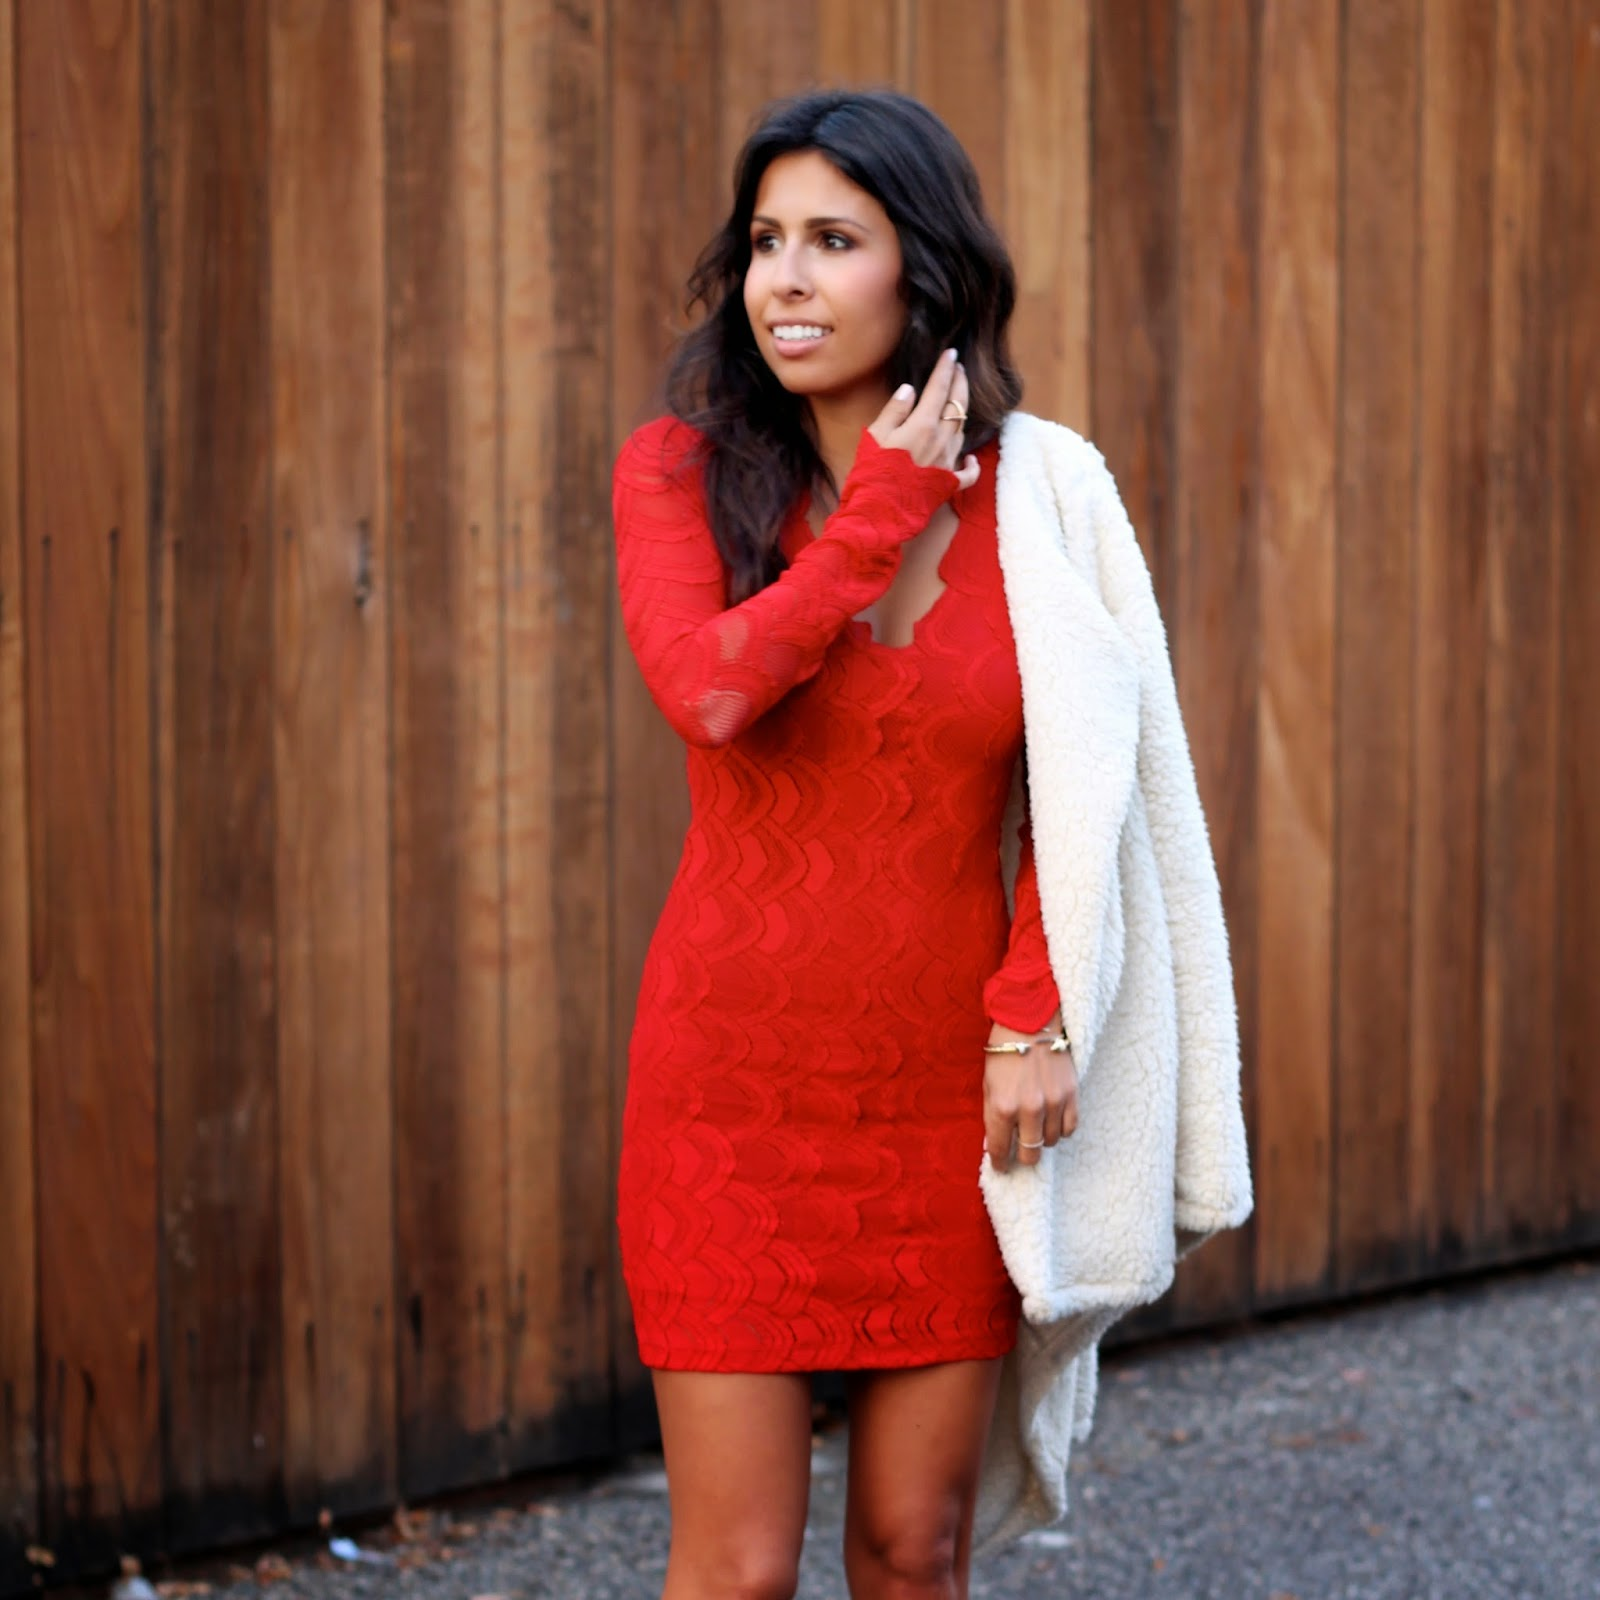 nightcap dress, what to wear on valentine's day, dress rental, style, lace dress